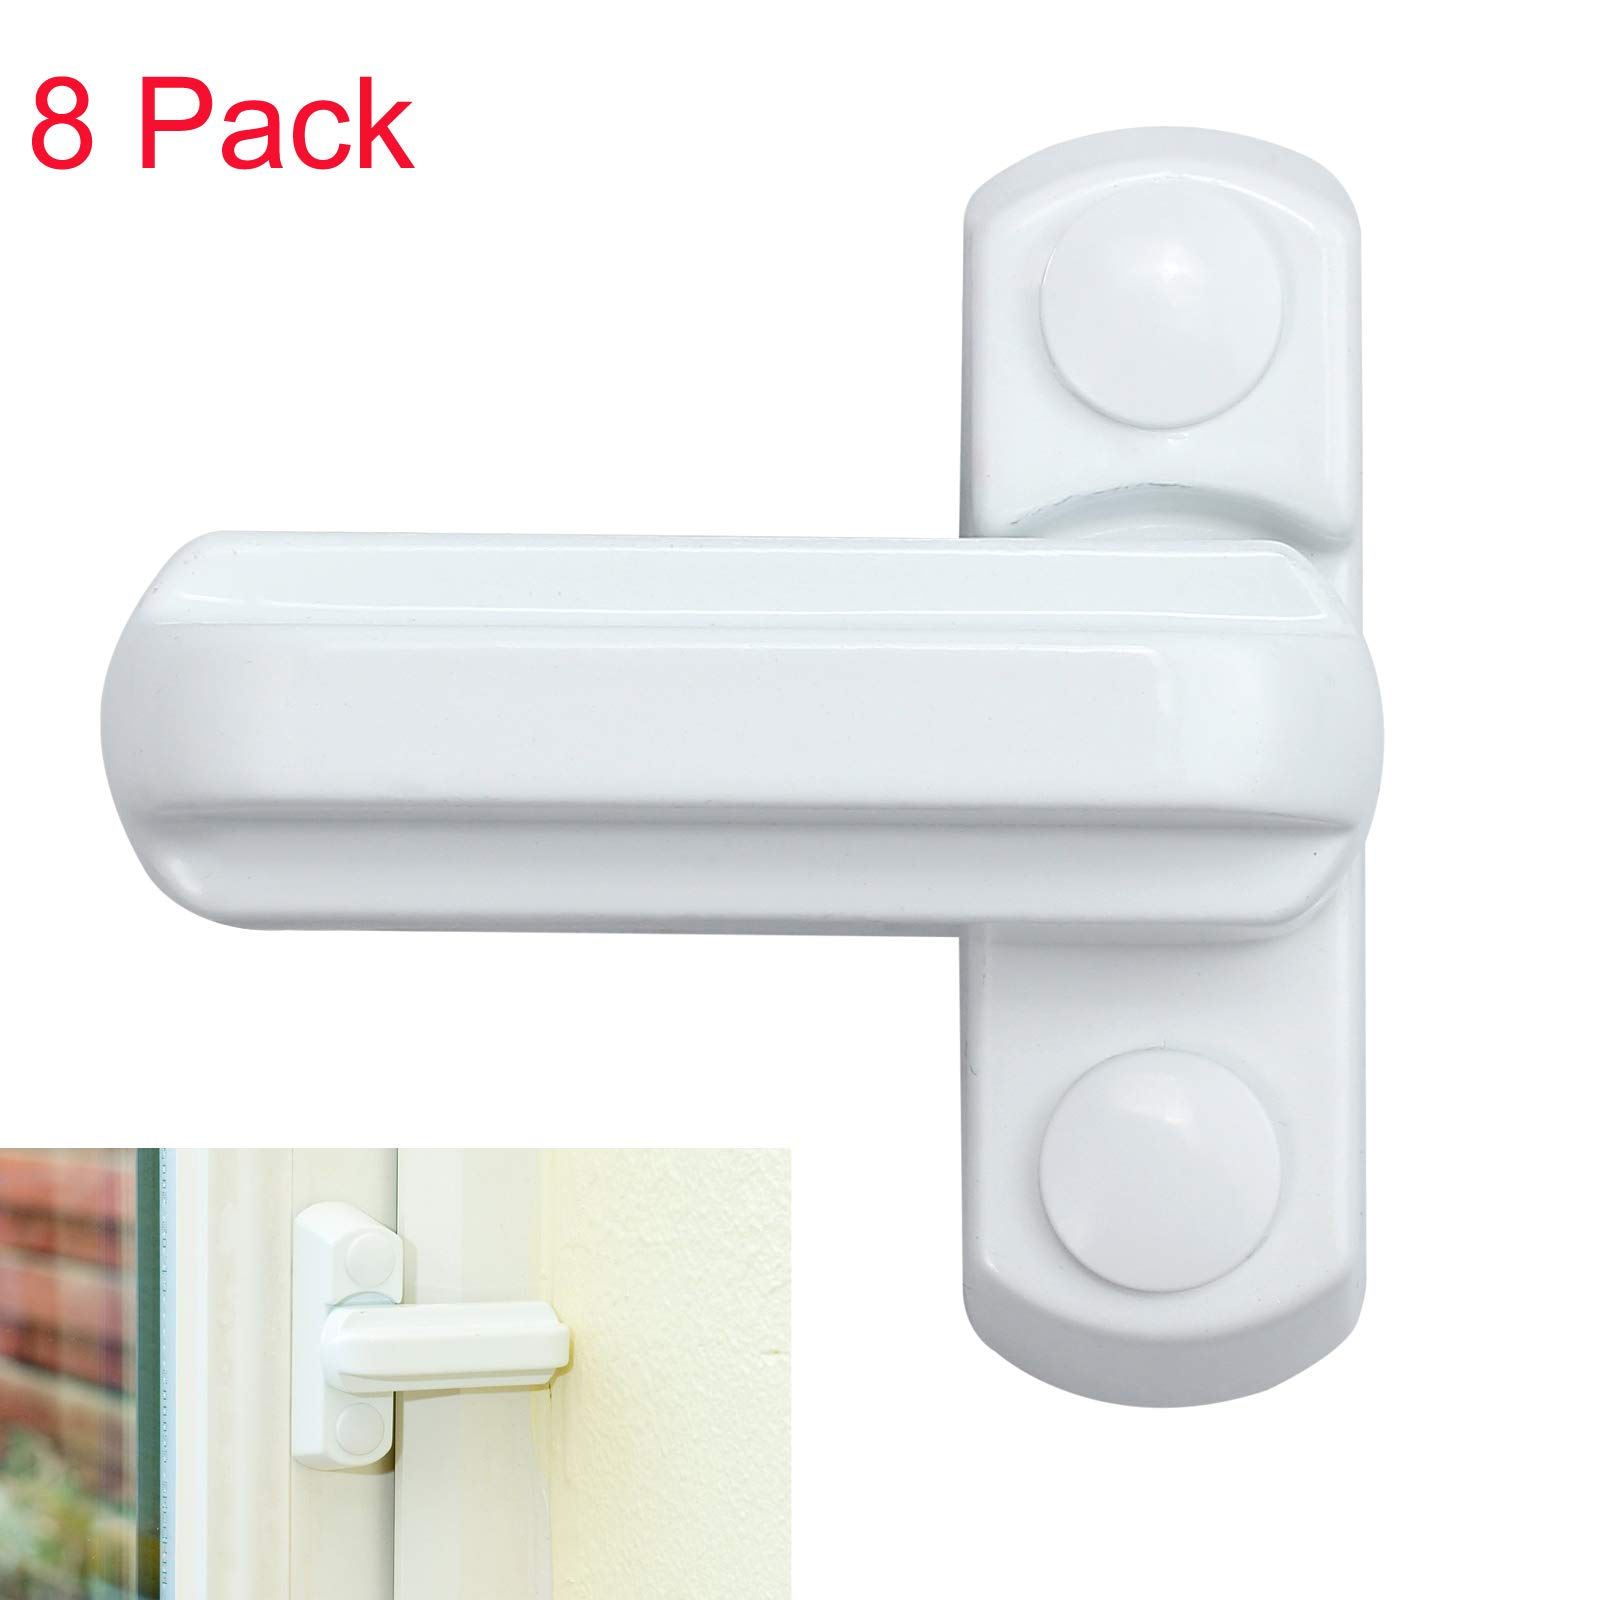 LiNKFOR 8Pcs Sash Lock Sash Windows Lock Sash Jammer Strong Zinc Cast Alloy Extra Security Locks for Various UPVC/PVC Doors, Windows and Home Security by LiNKFOR